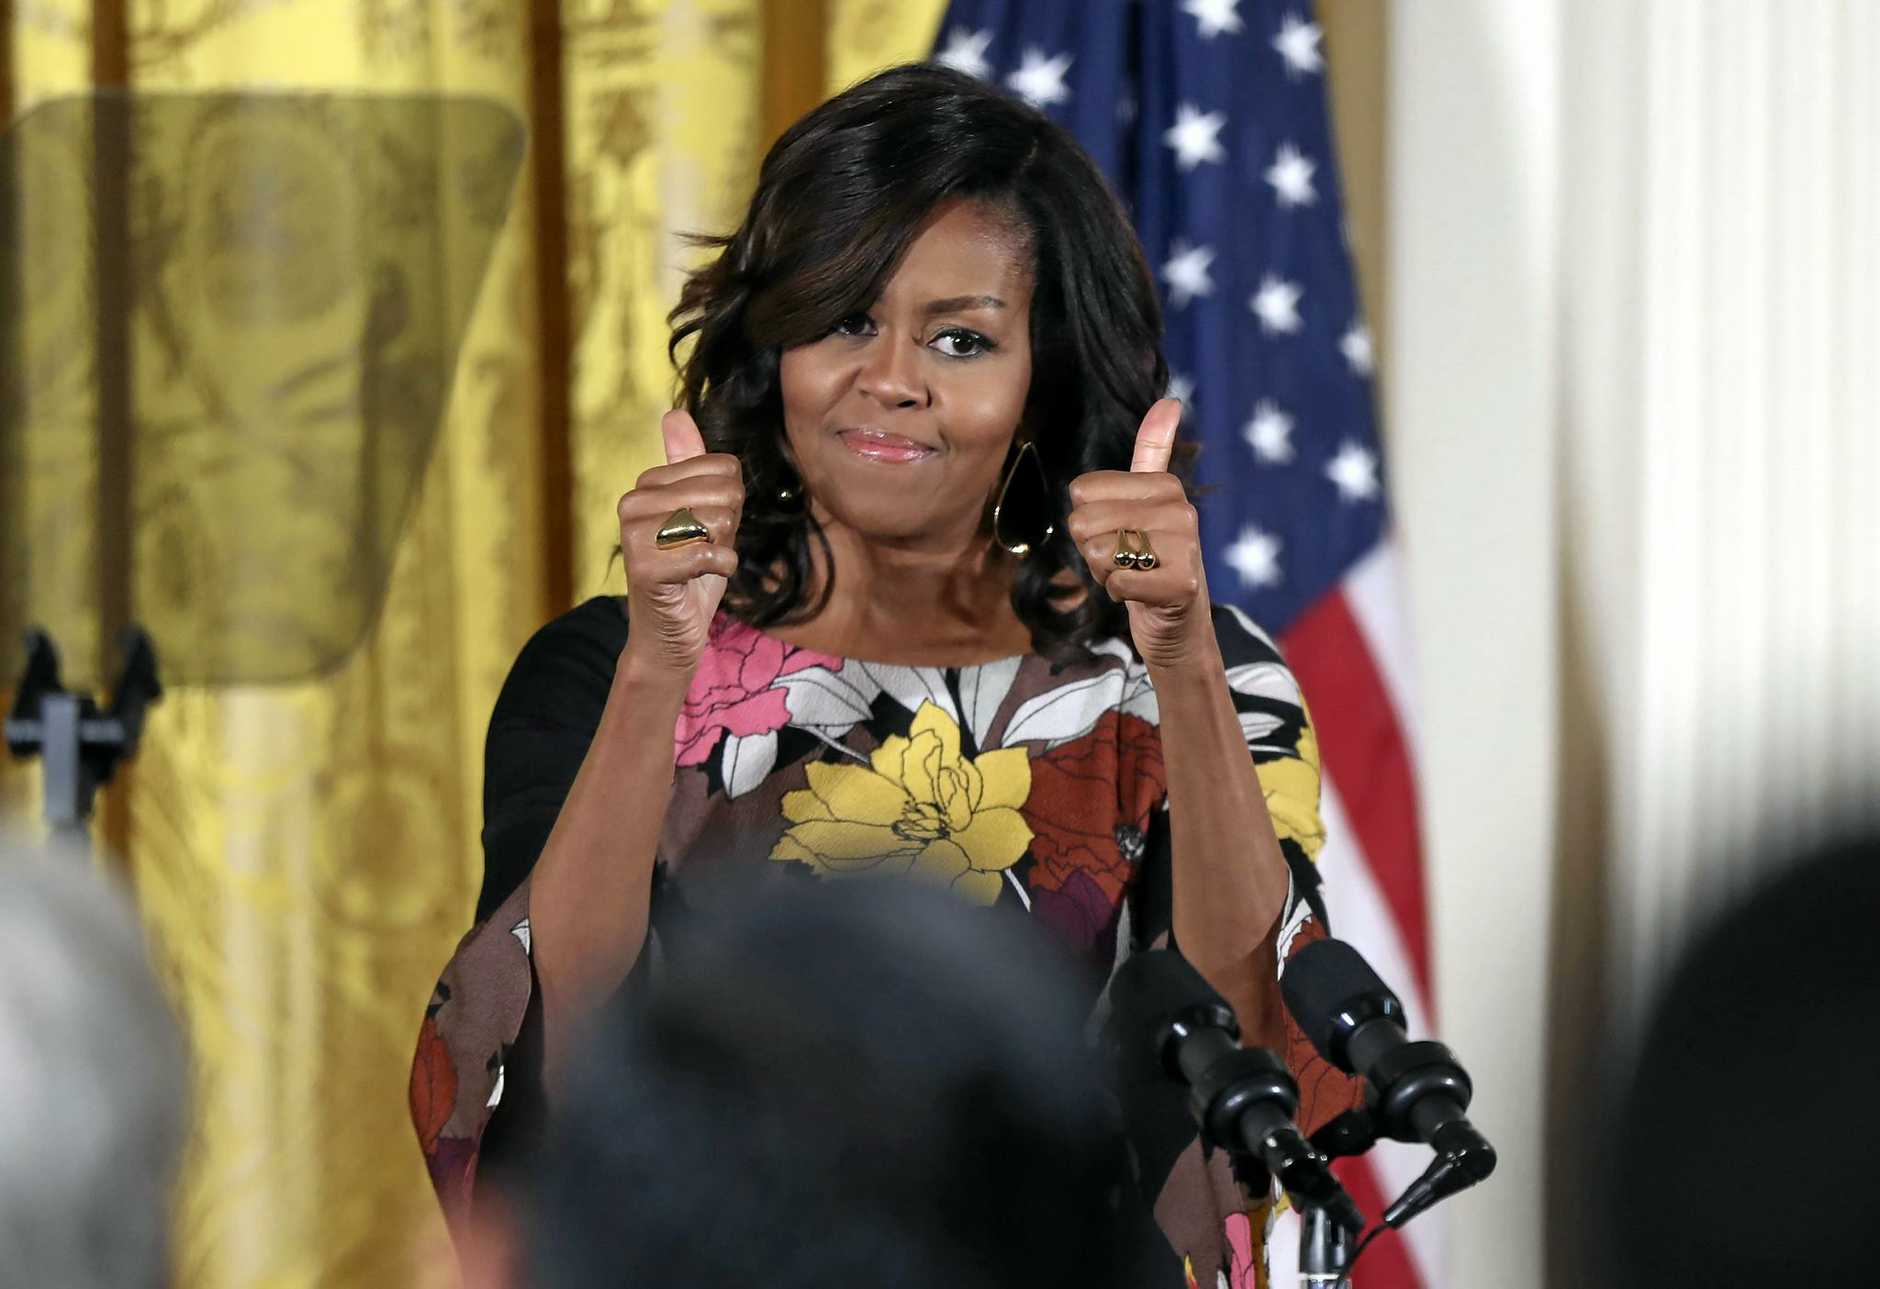 First Lady Michelle Obama commands huge respect in the US.